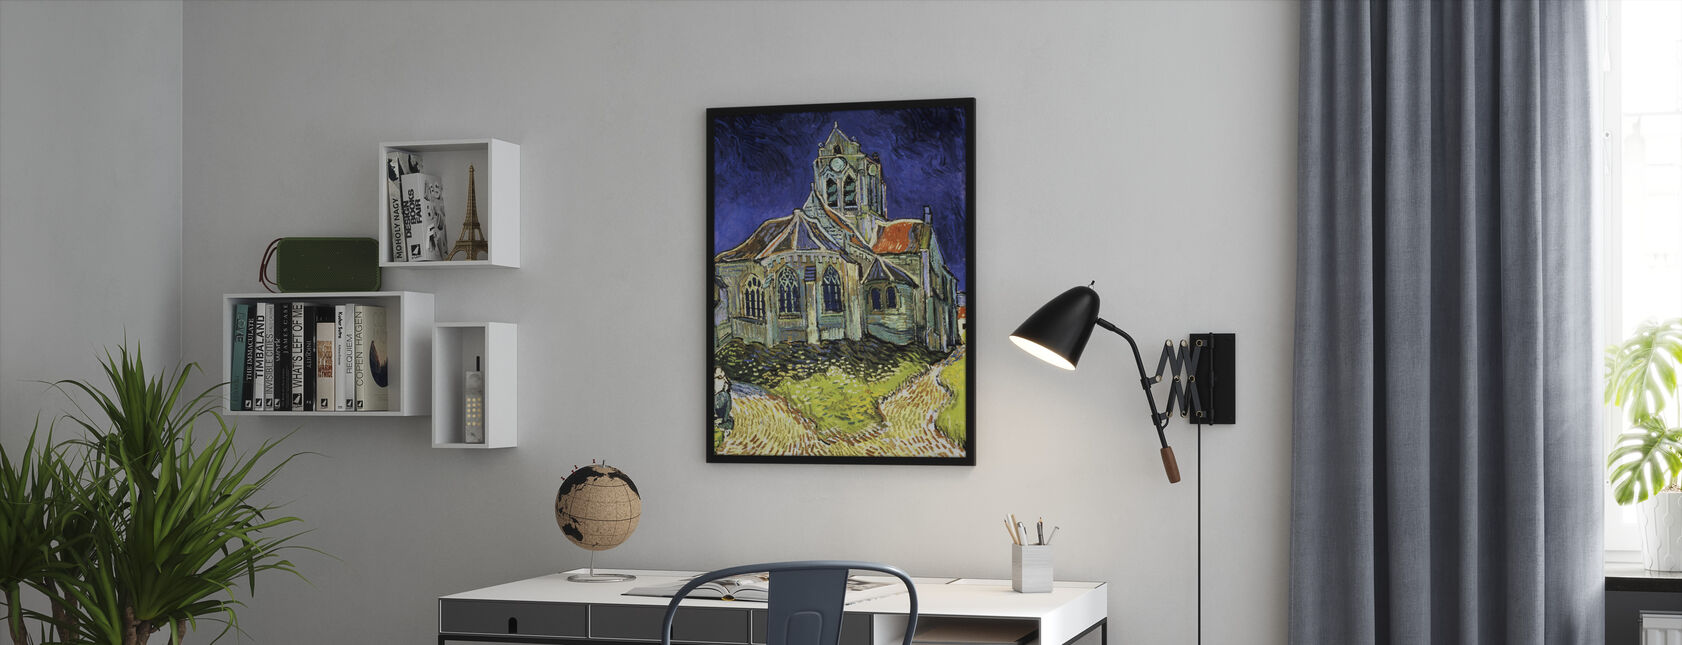 Church at Auvers-sur-Oise - Vincent van Gogh - Framed print - Office